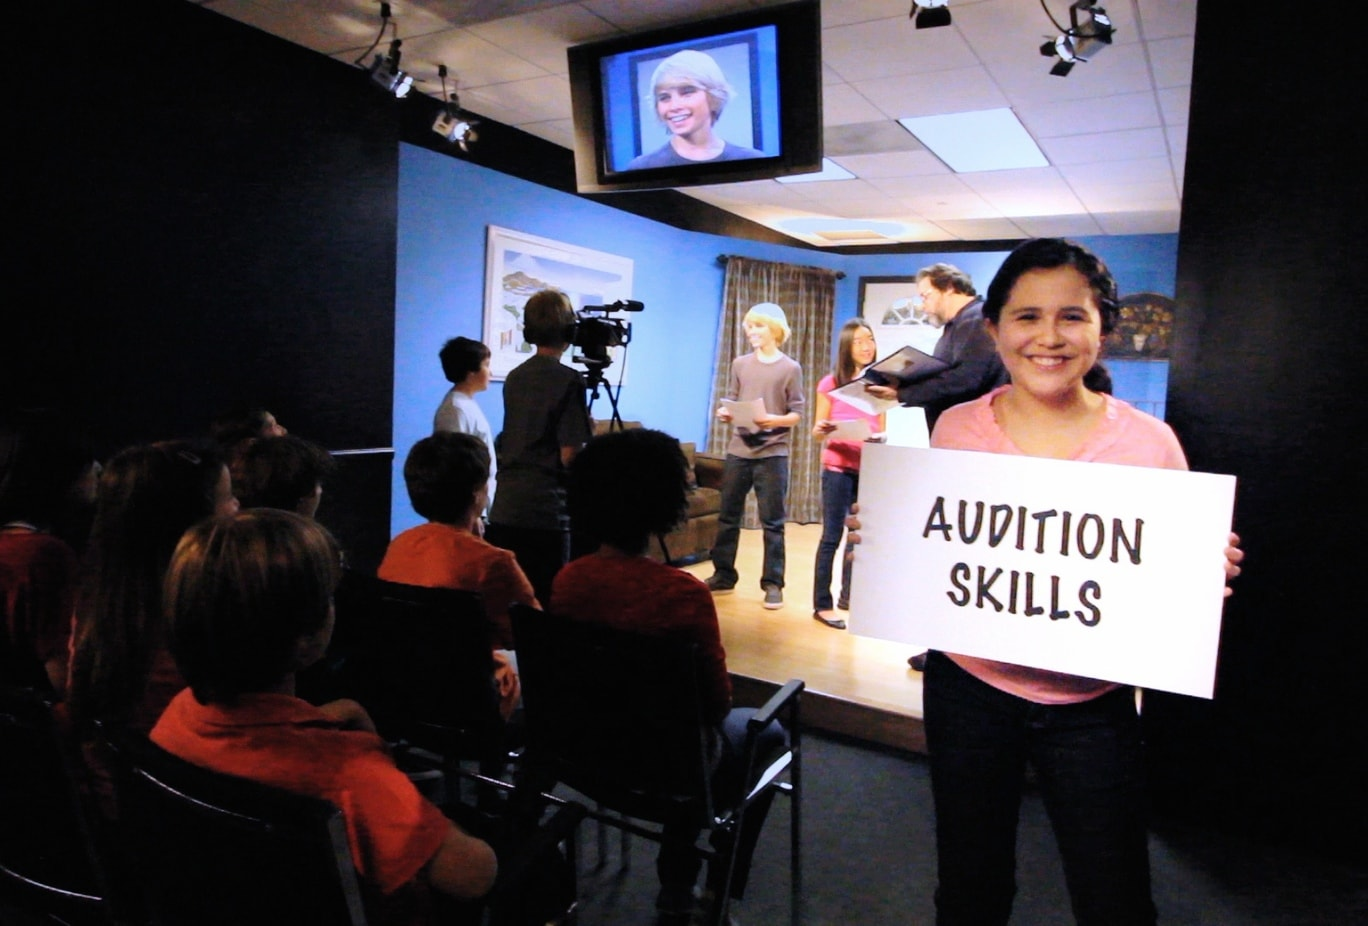 Acting Classes For Kids and Teens